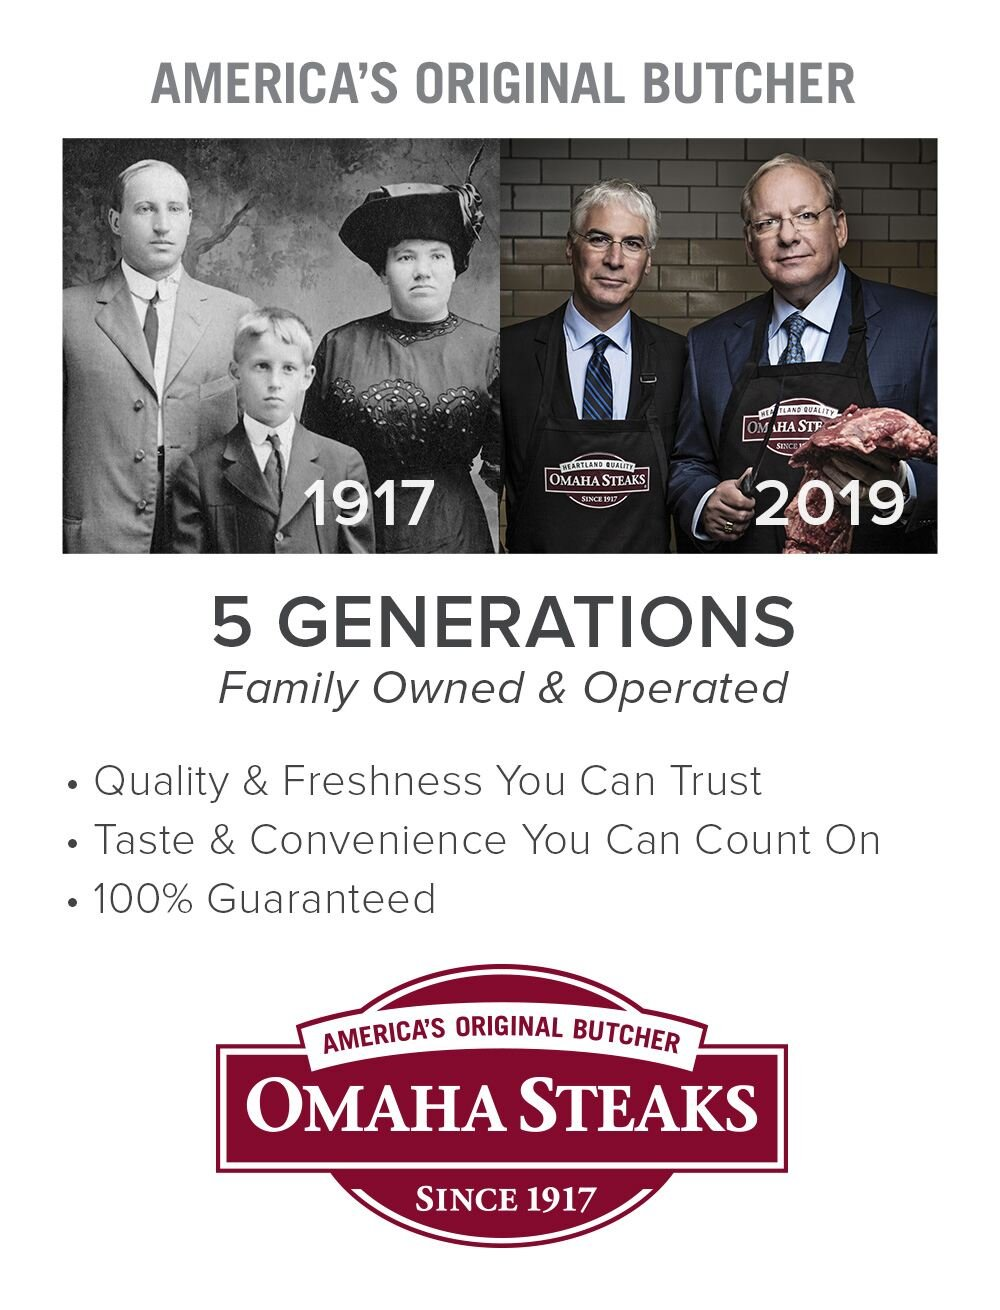 America's Original Butcher - 5 Generations Family Owned & Operated • Quality & Freshness You Can Trust  • Taste & Convenience You Can Count On • 100% Guaranteed | Omaha Steaks